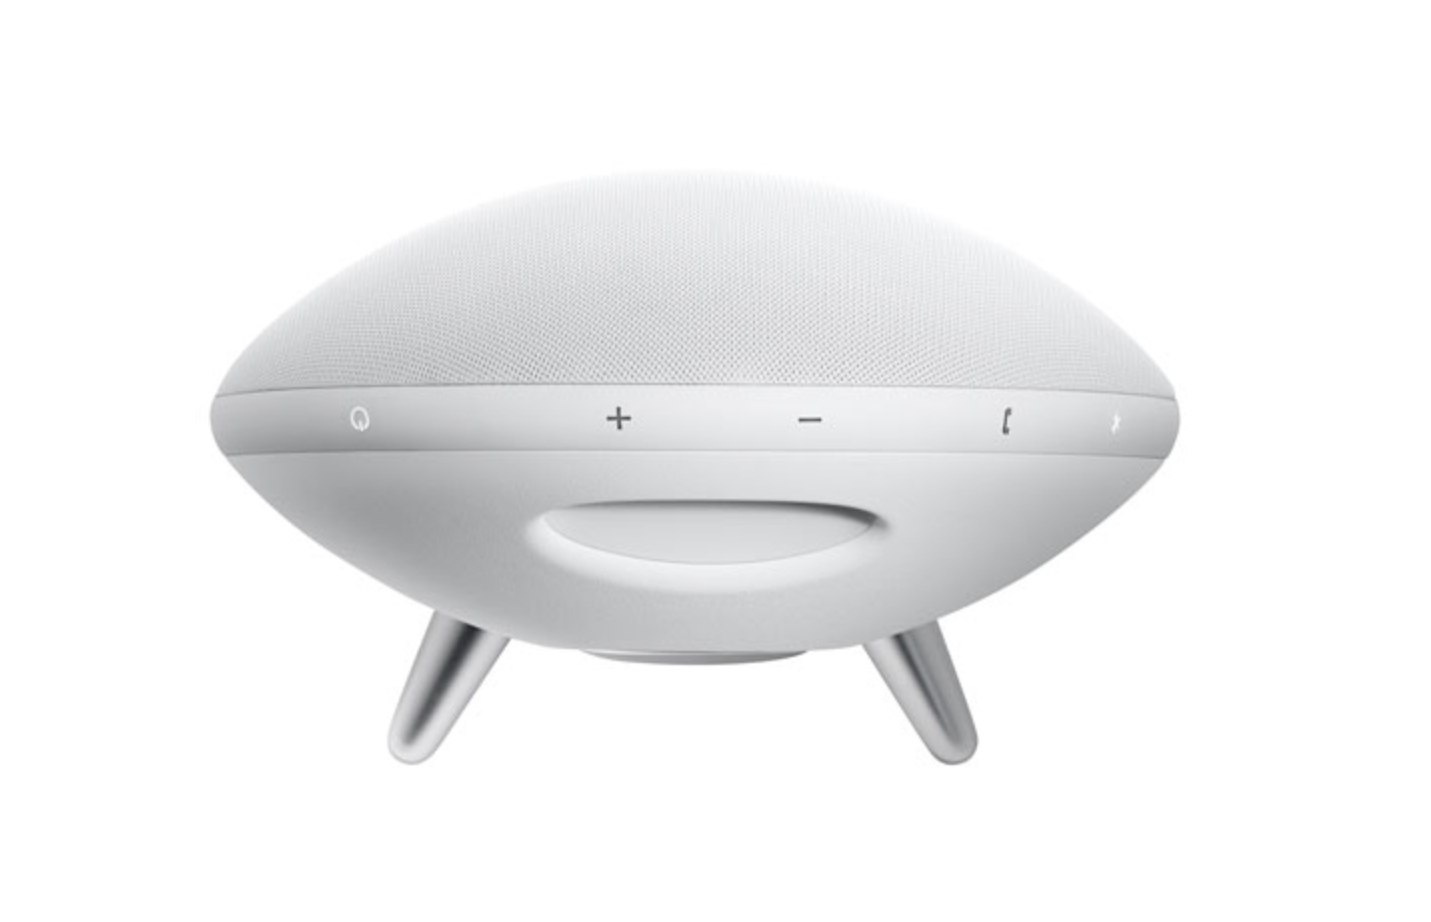 portable bluetooth speaker buying guide - harman kardon onyx studio 3 portable bluetooth speaker